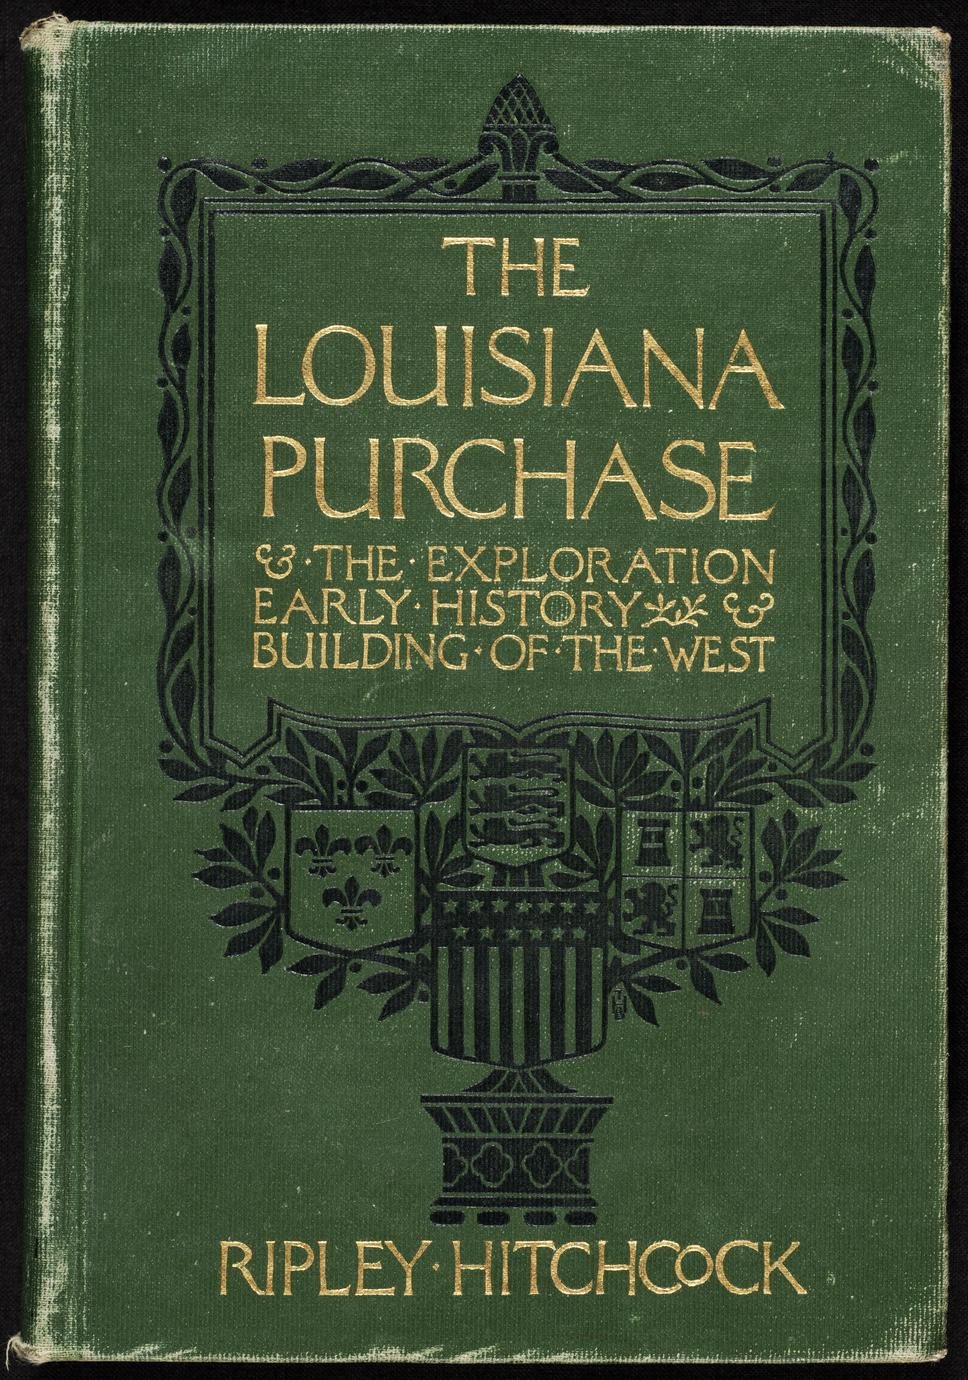 The Louisiana purchase and the exploration, early history and building of the West (1 of 3)